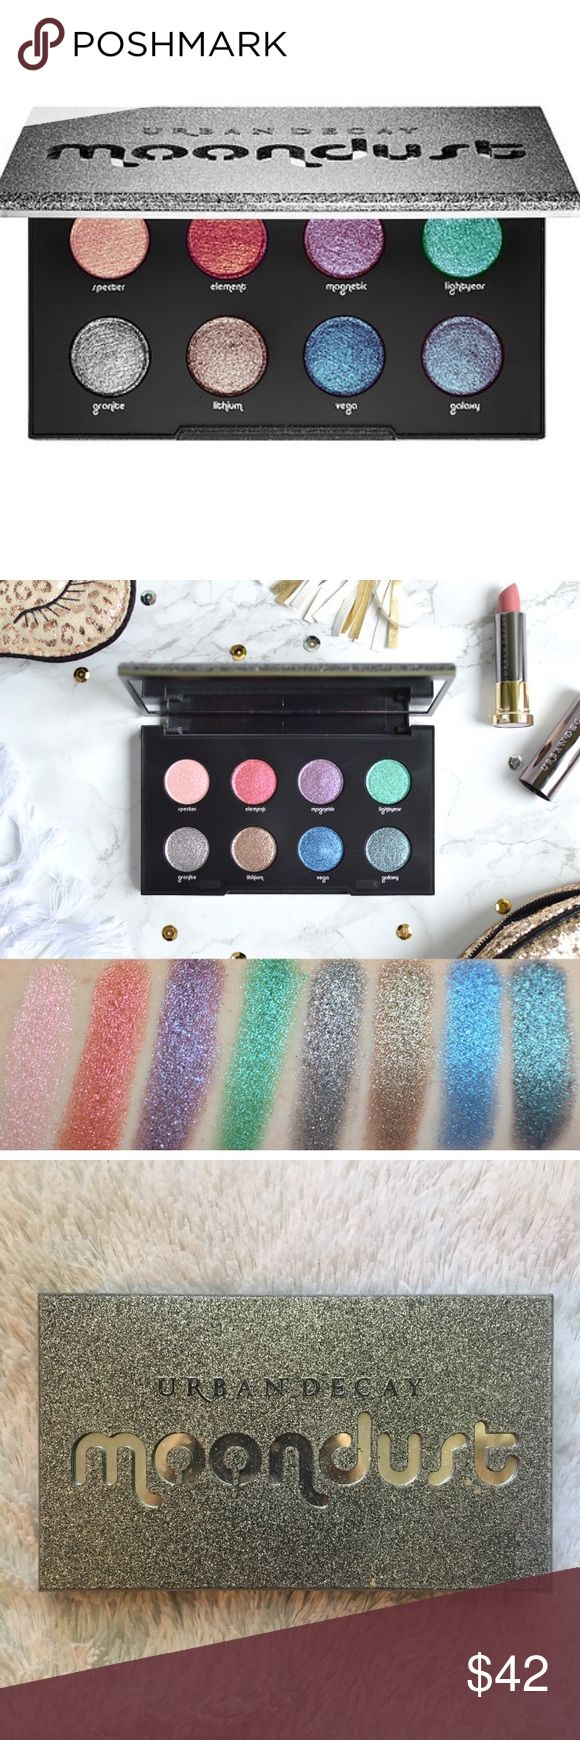 Selling this Urban Decay Moondust Palette on Poshmark! My username is: kittygoespurr. #shopmycloset #poshmark #fashion #shopping #style #forsale #Urban Decay #Other